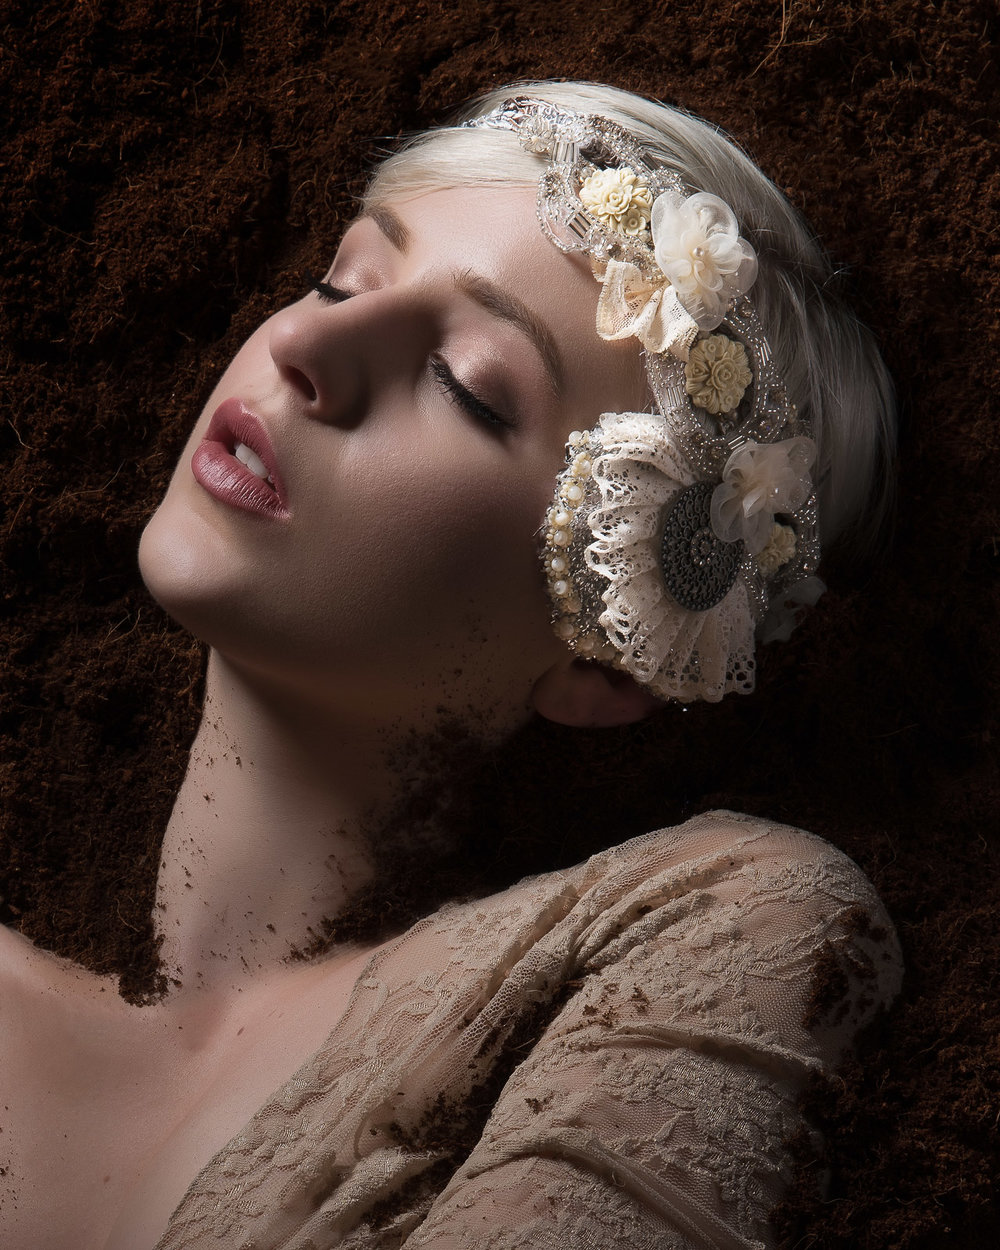 Kuoh Photography - Buried Treasure Beauty Concept - Head